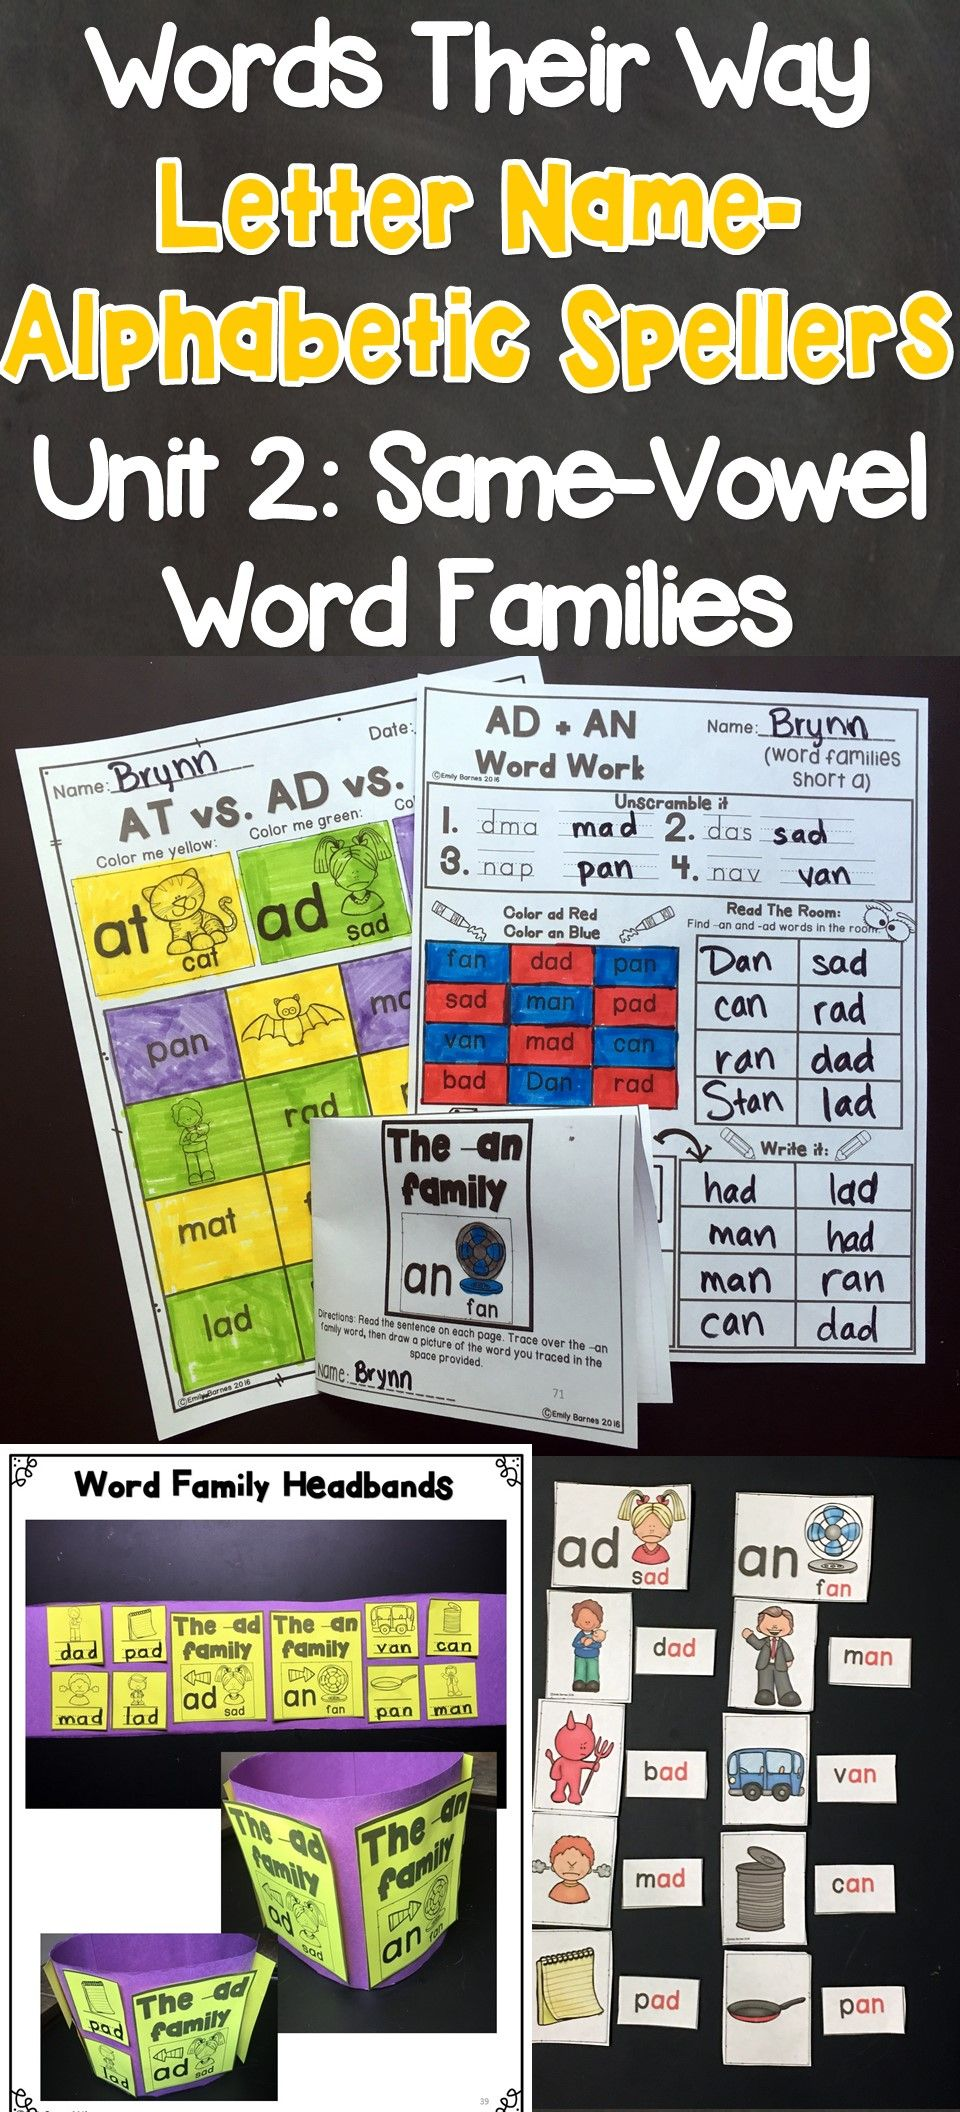 Words Their Way Letter Name Alphabetic Spellers Same Vowel Word